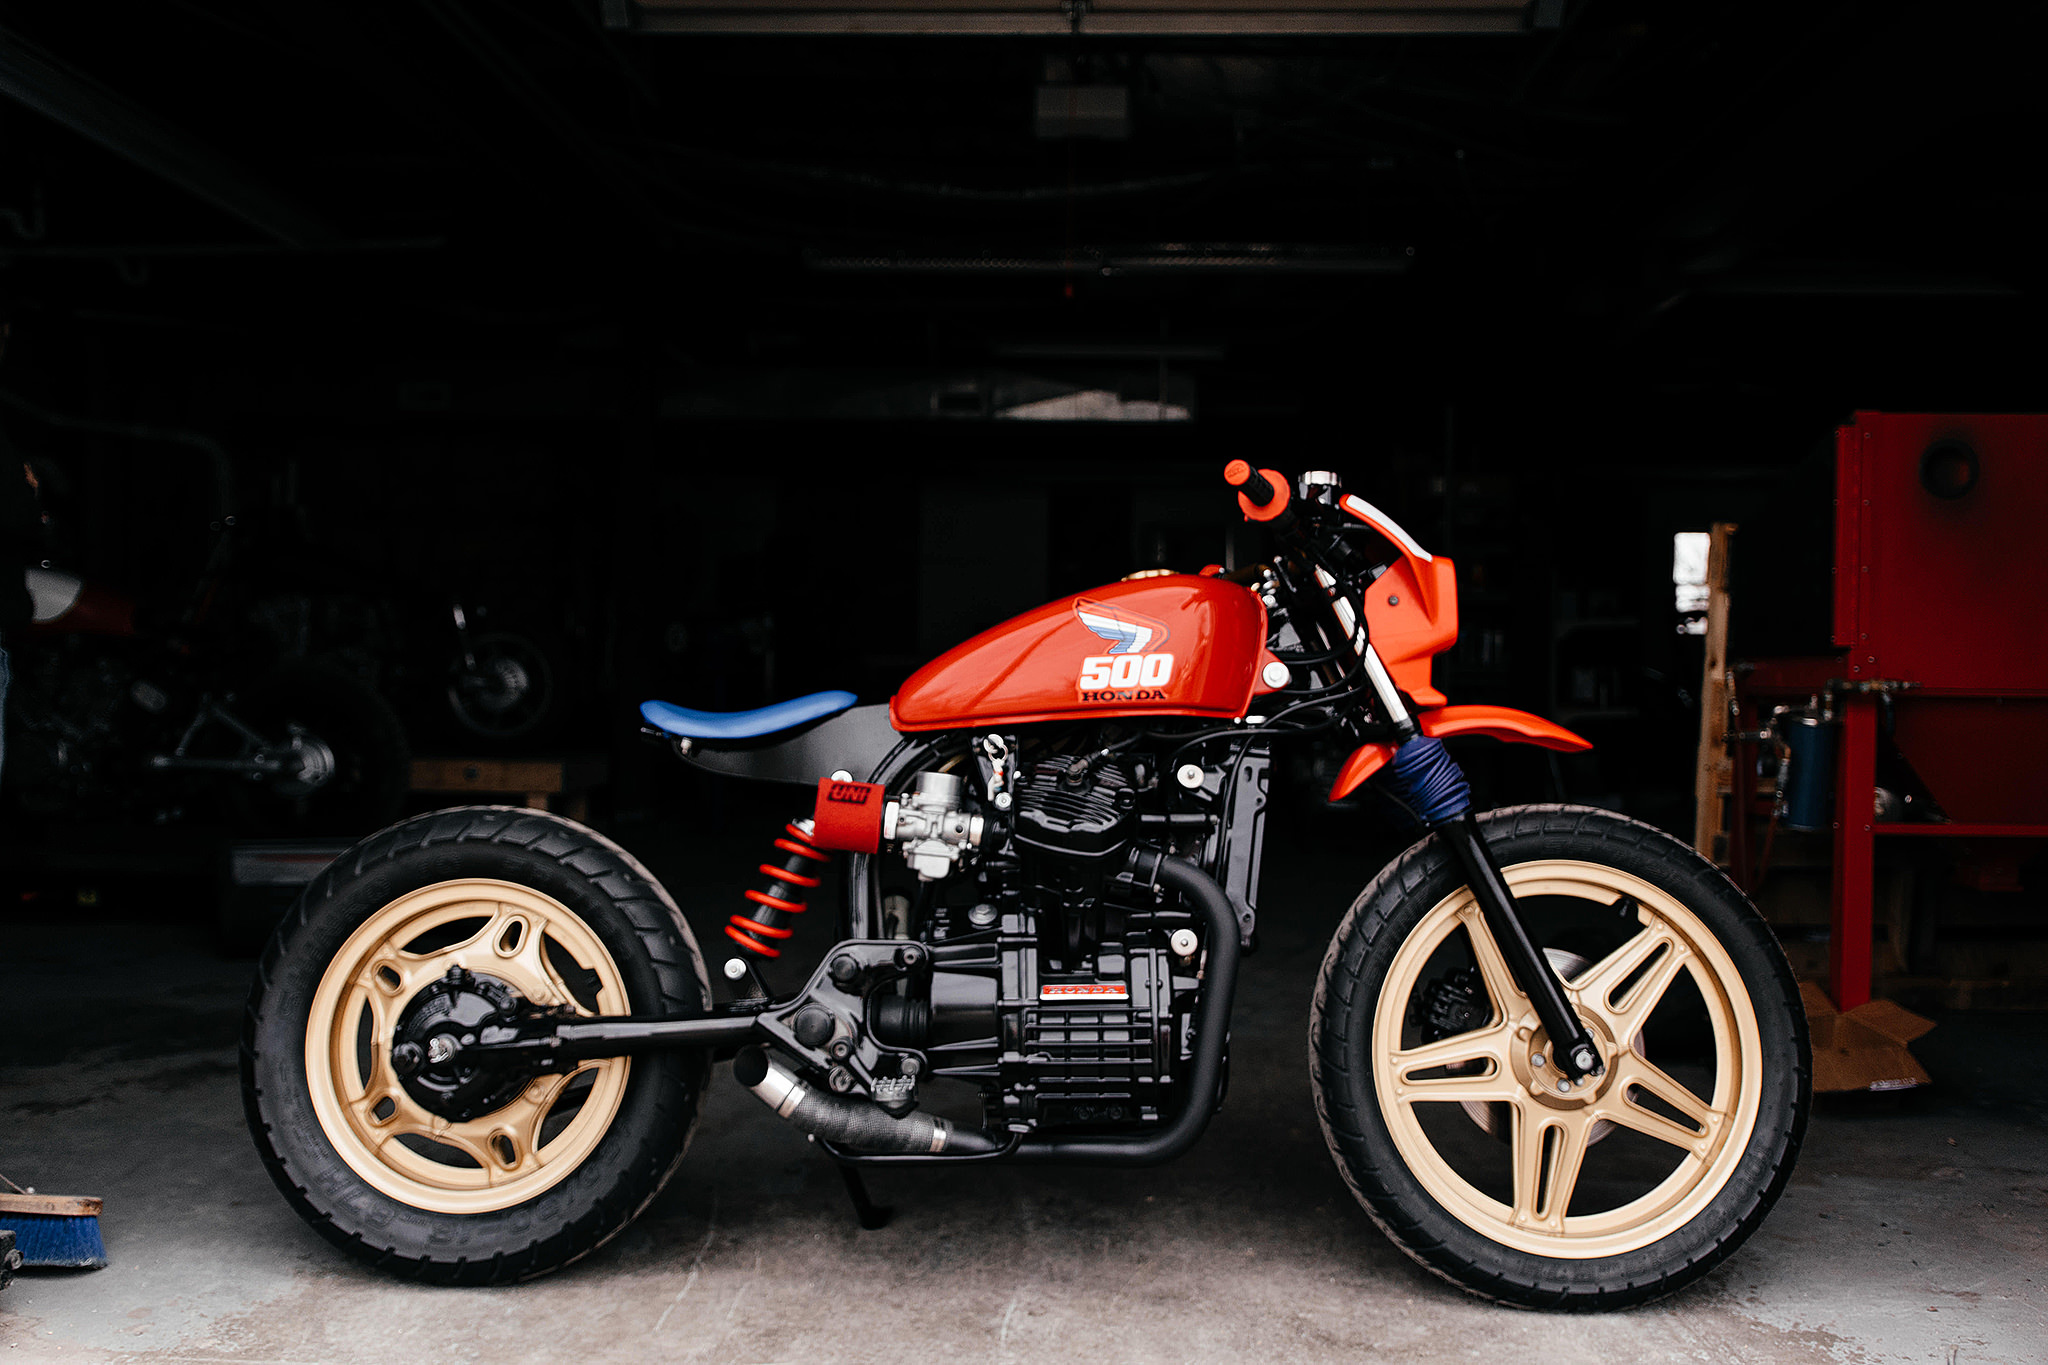 Brickhouse Builds (BJ) CX500R [49] - WEB (FB).jpg